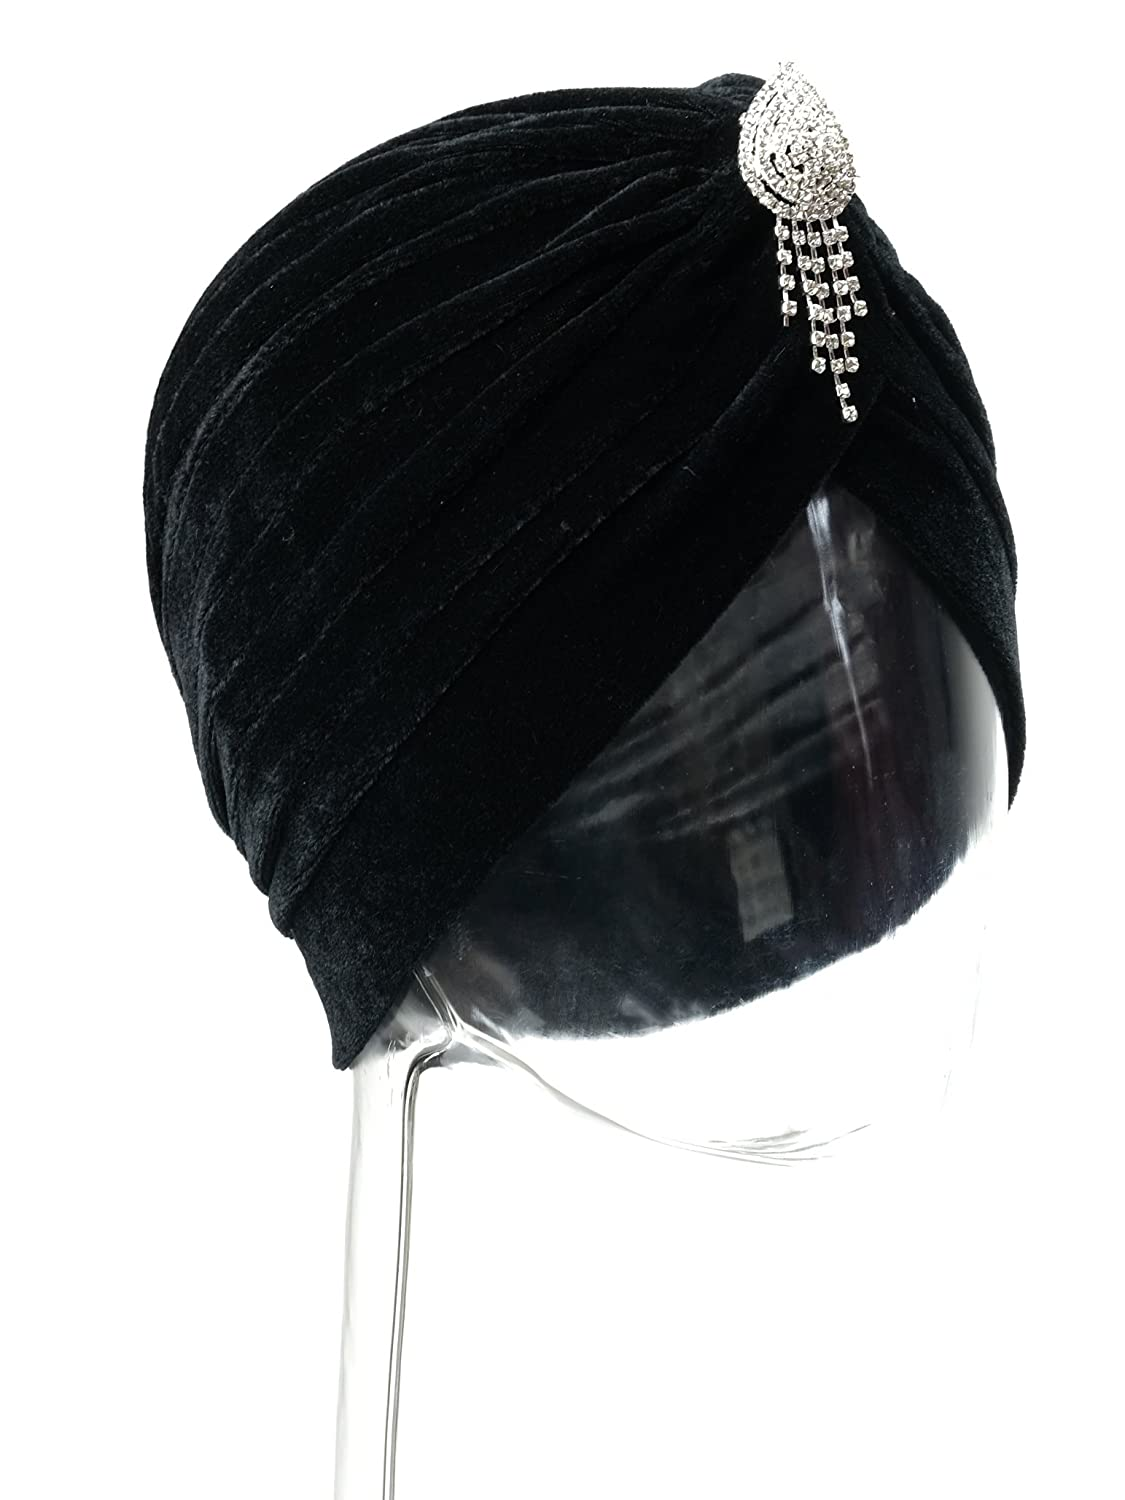 1920s Flapper Headband, Gatsby Headpiece, Wigs Vintage 20s 30s 50s Twist Pleated Velvet Knotted Stretch Turban Hat Head Wrap $10.29 AT vintagedancer.com